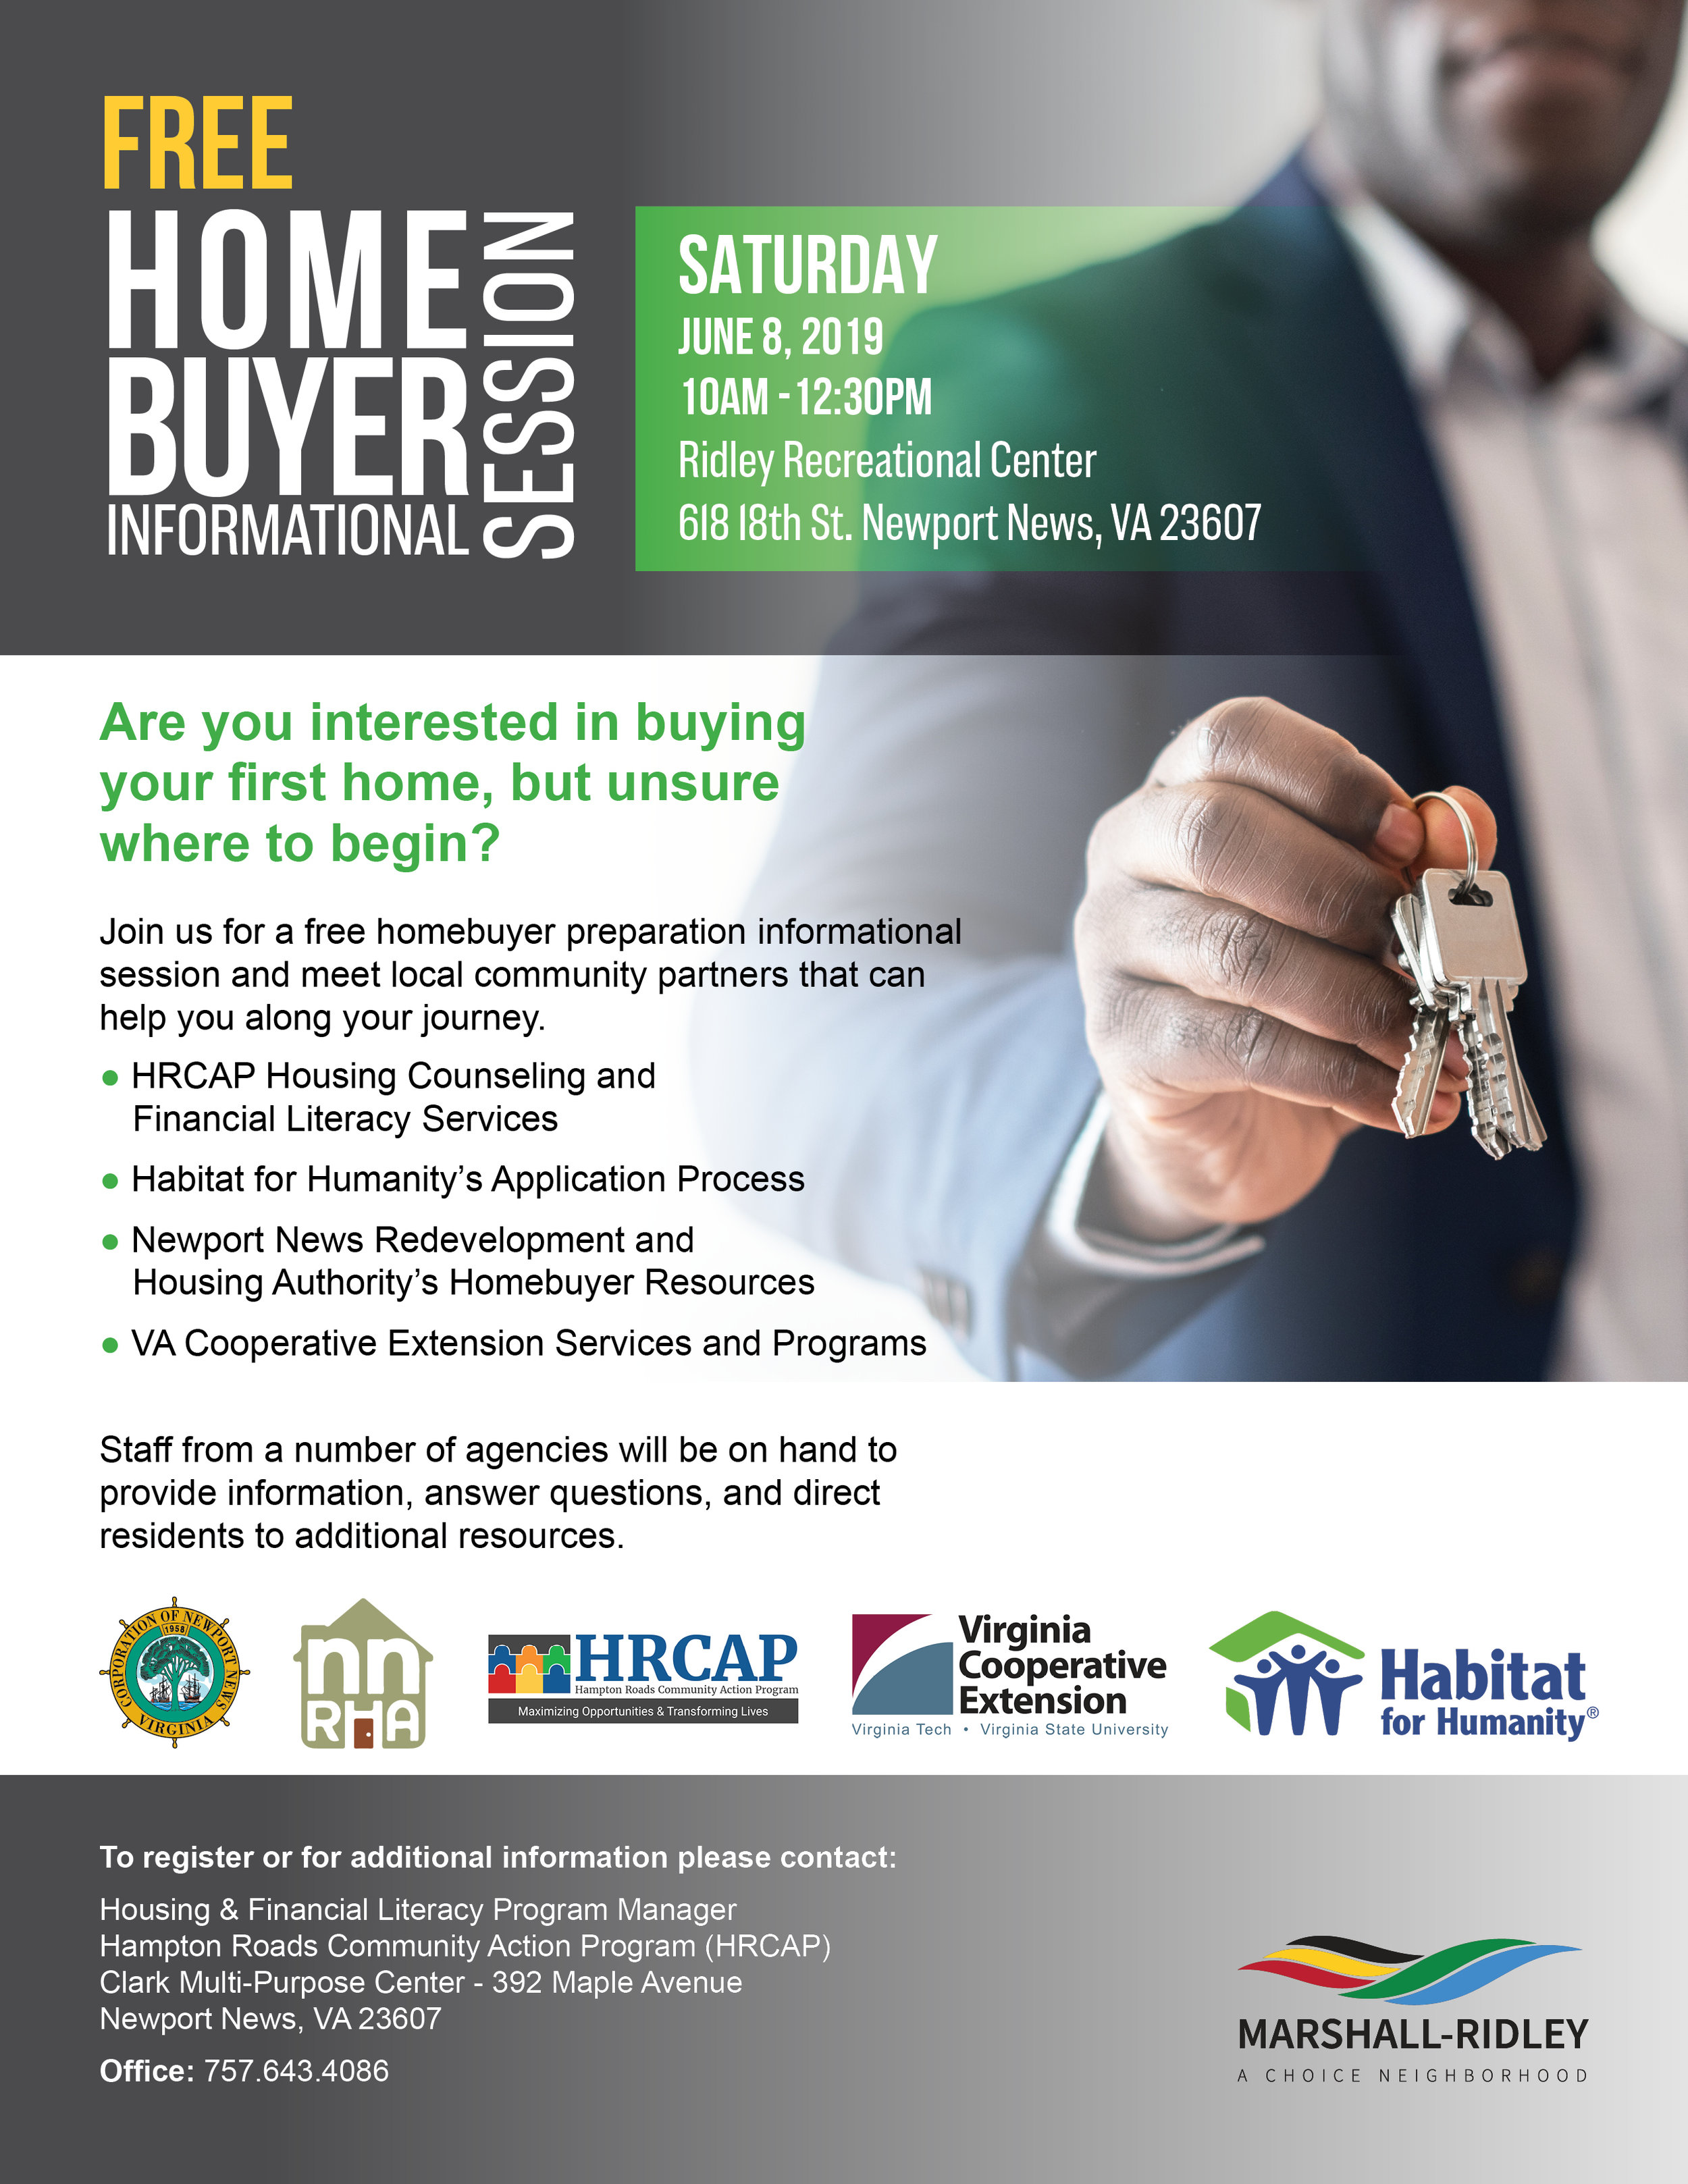 CM-19-56985-CNI Homebuyer Informational Session_WEB Flyer.jpg